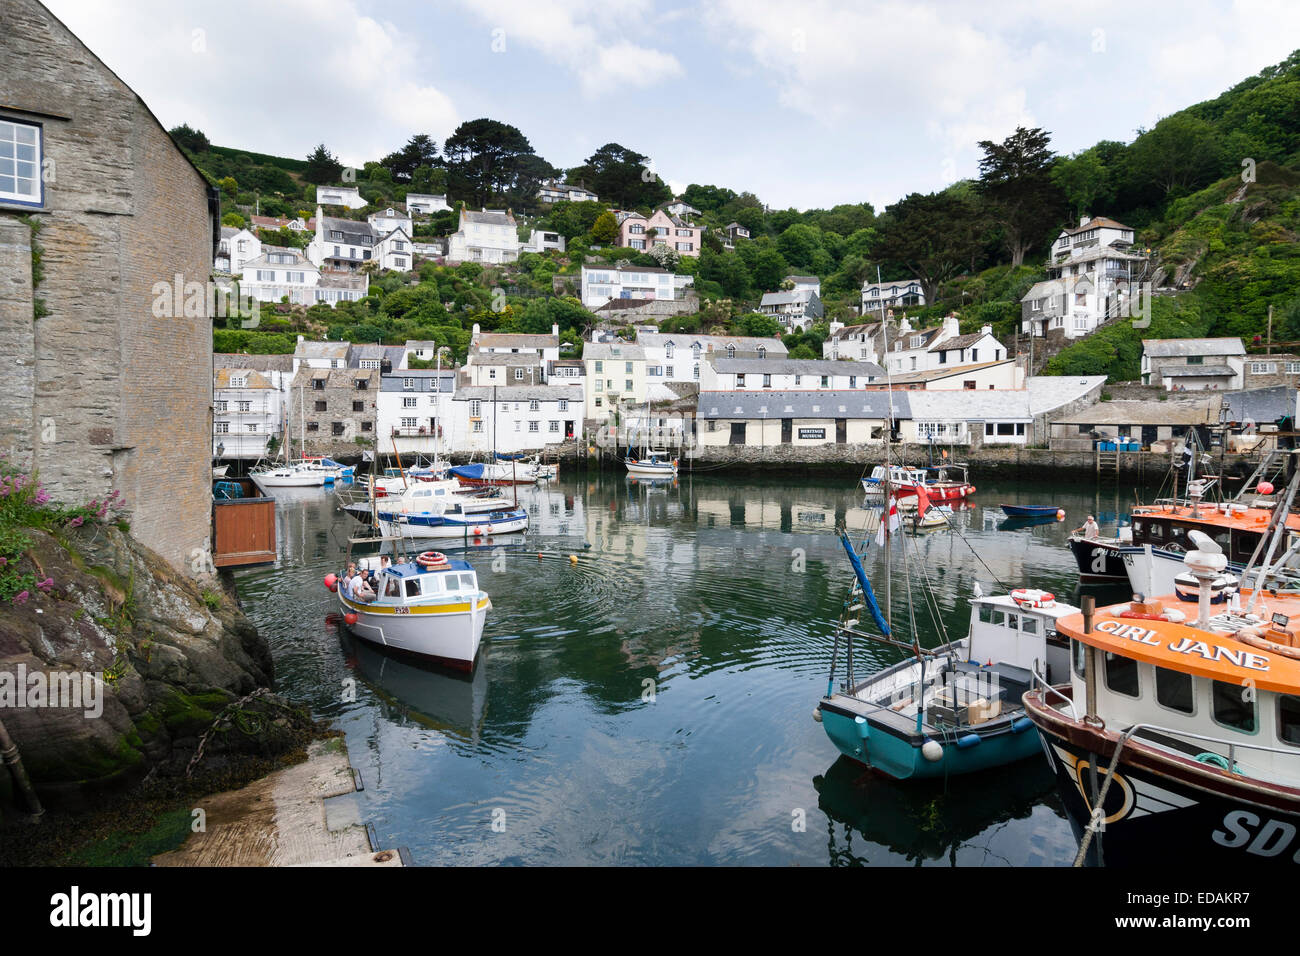 Fishing and pleasure boats in the inner harbour of Polperro, Cornwall - Stock Image